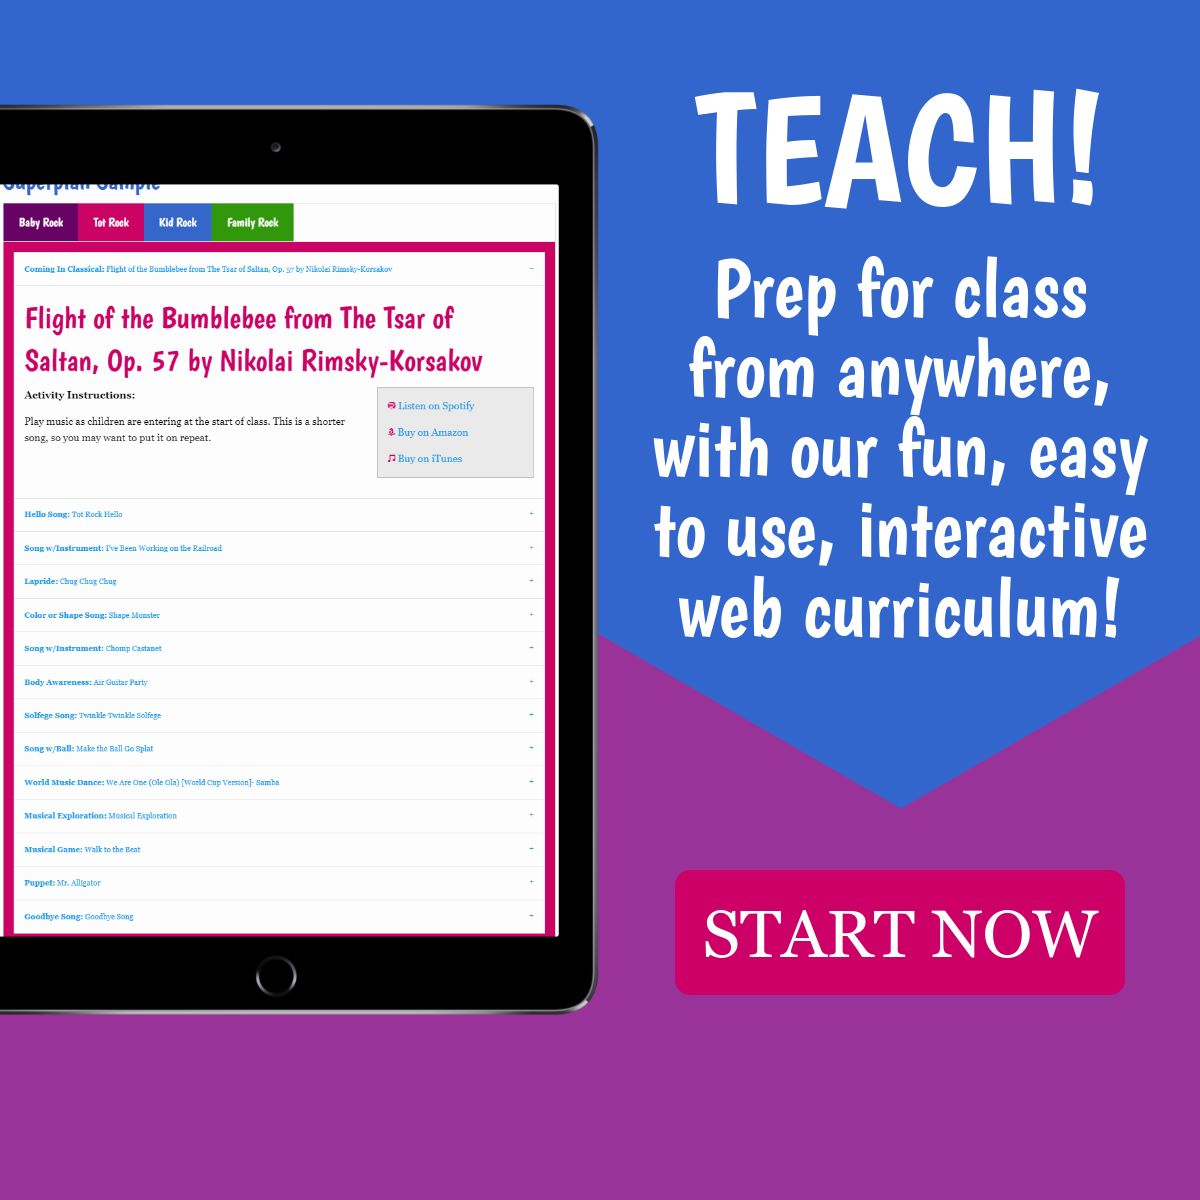 SO EASY! Prep for class from anywhere, with our easy to use, interactive web curriculum!